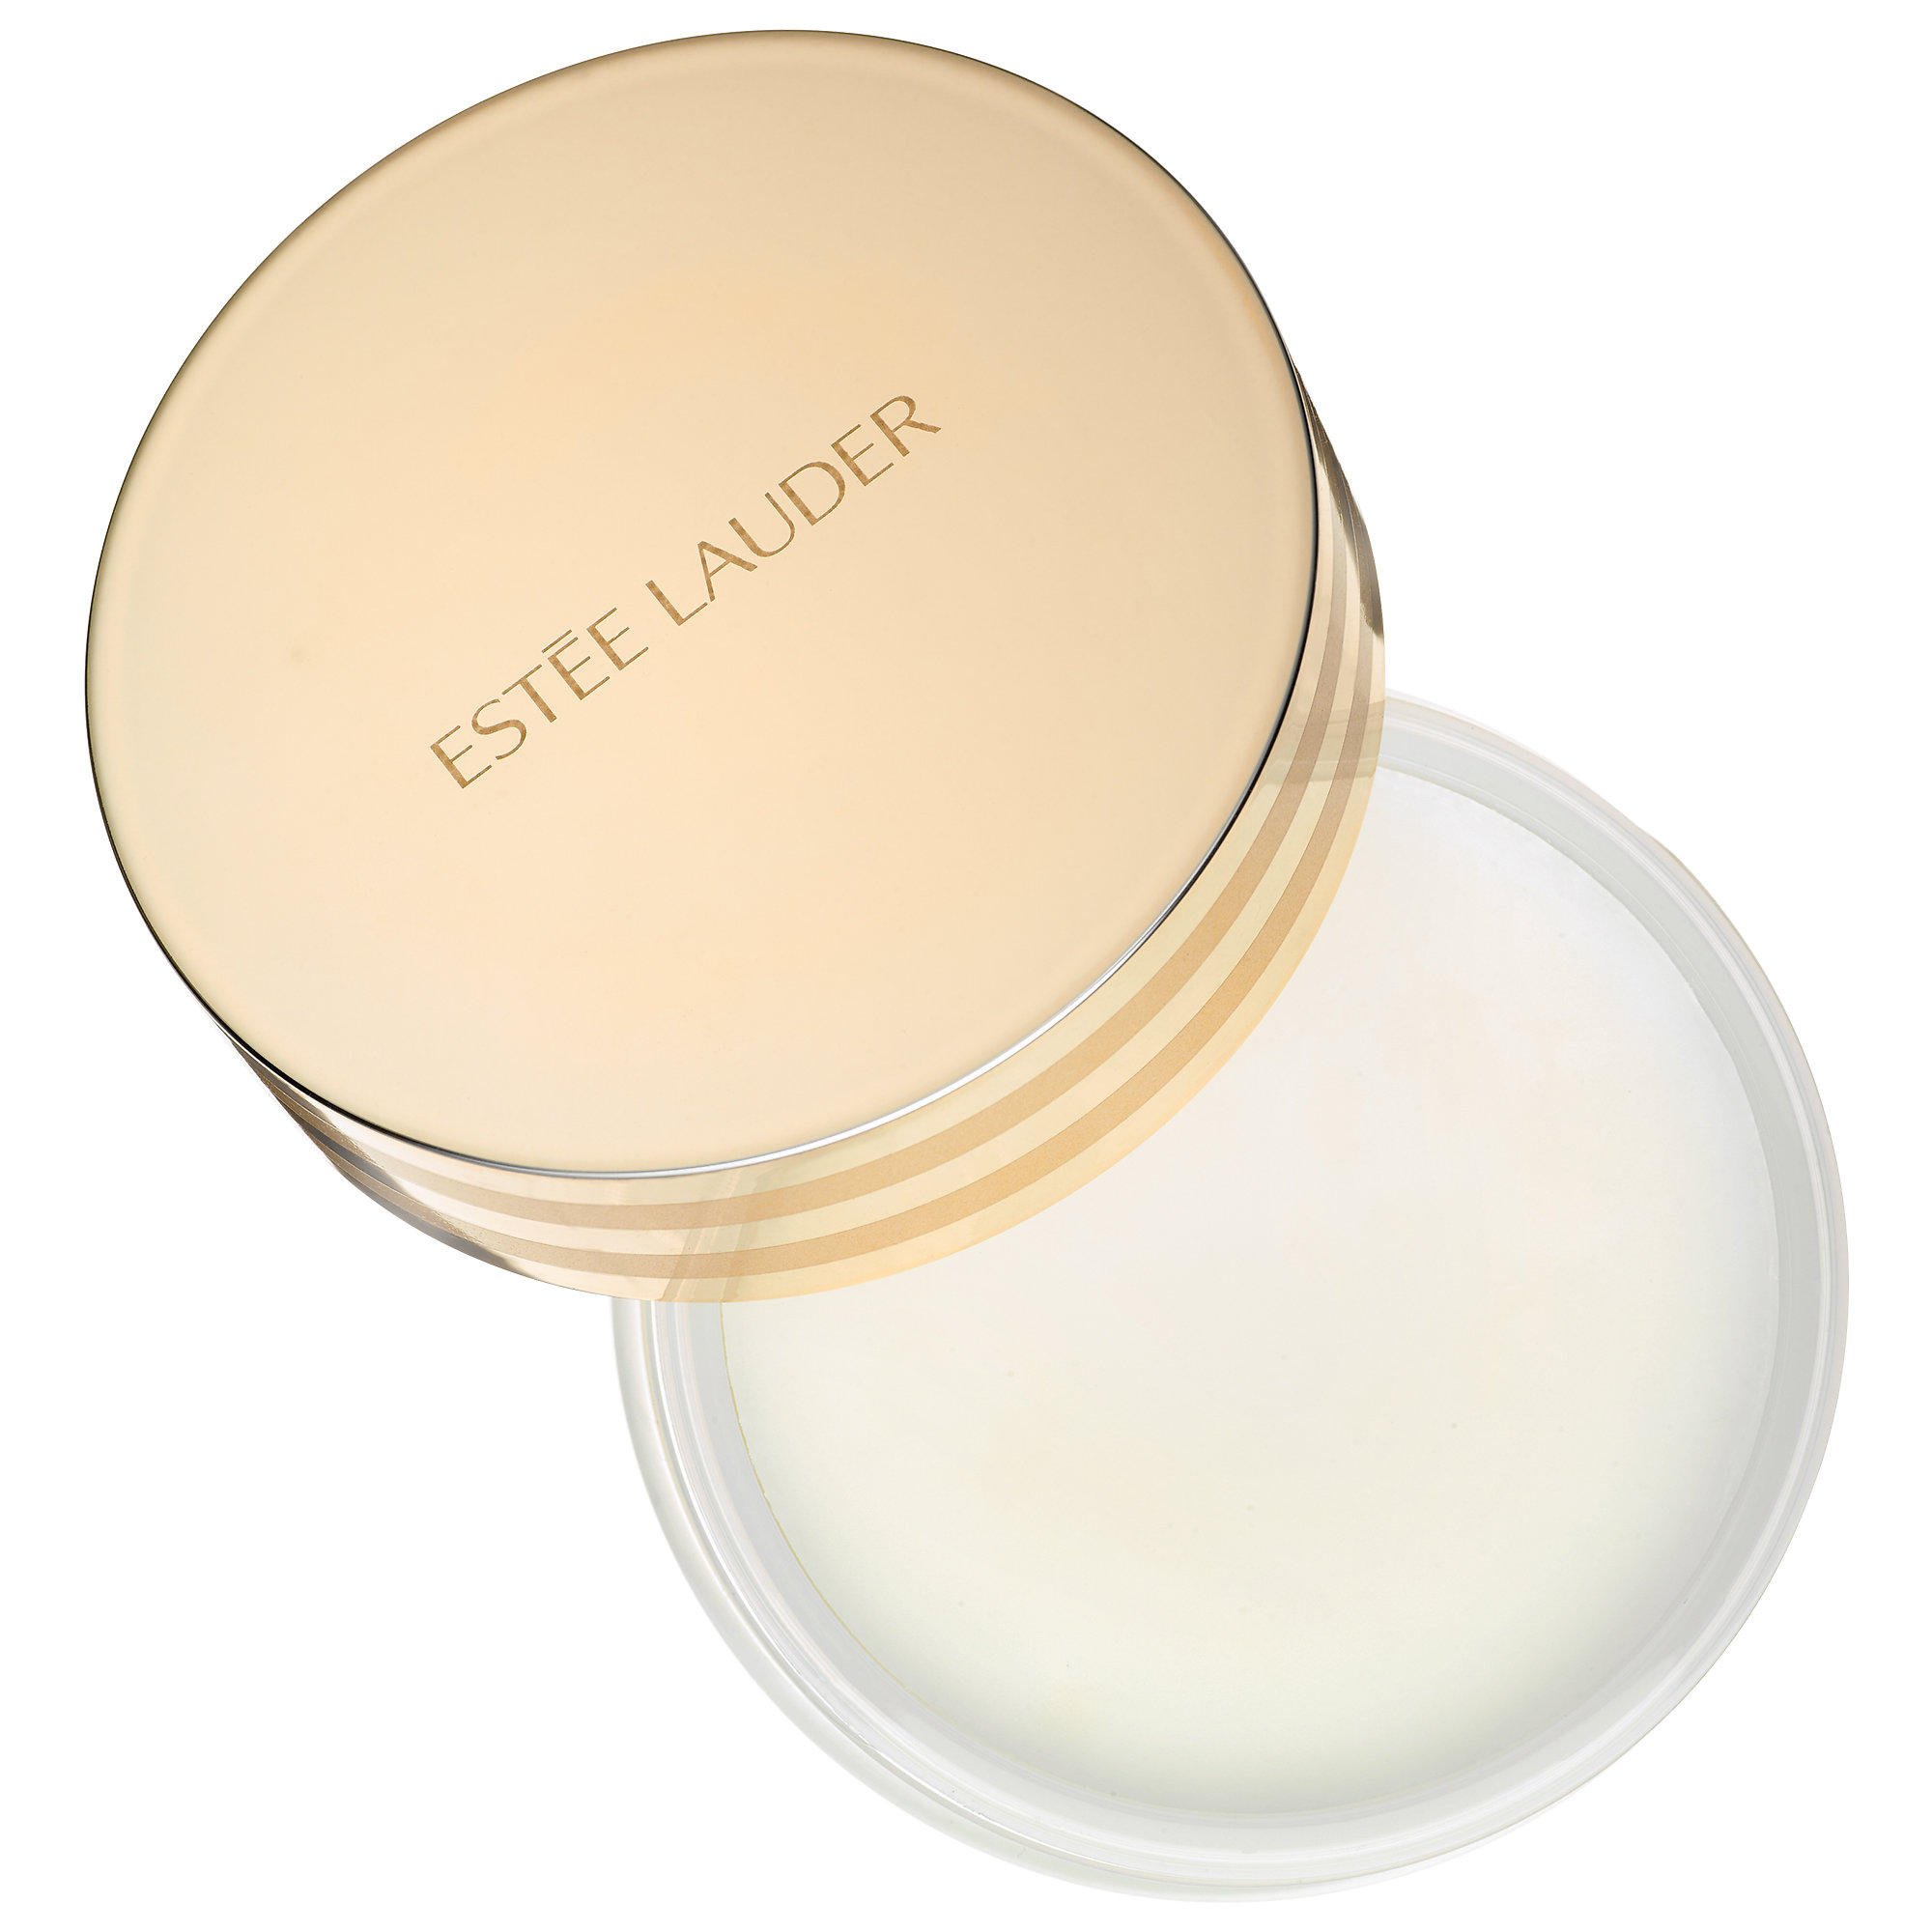 New ReleaseEstee Lauder launched new Advanced Night Micro Cleansing Balm